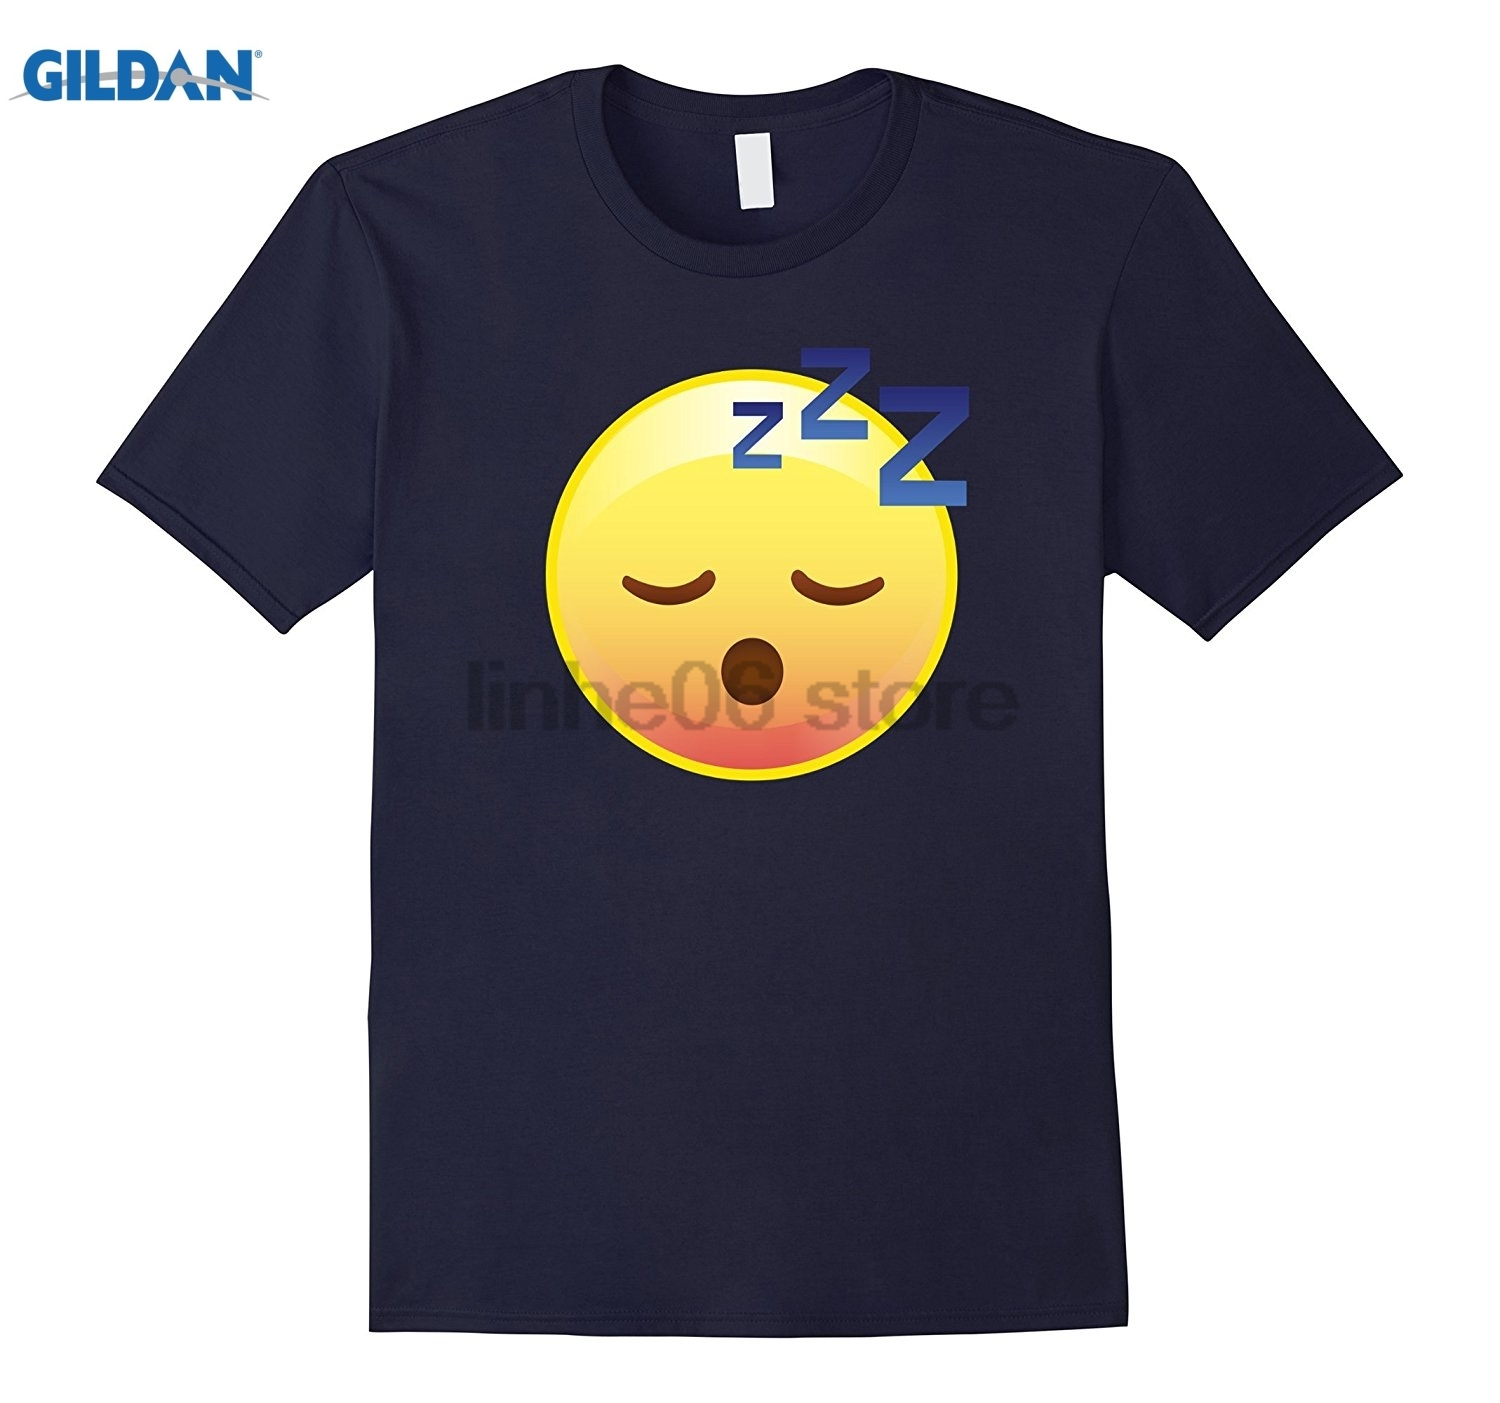 GILDAN Cute Sleeping Emoji Zzz T-Shirt - Perfect for Pajamas & PJs sunglasses women T-sh ...